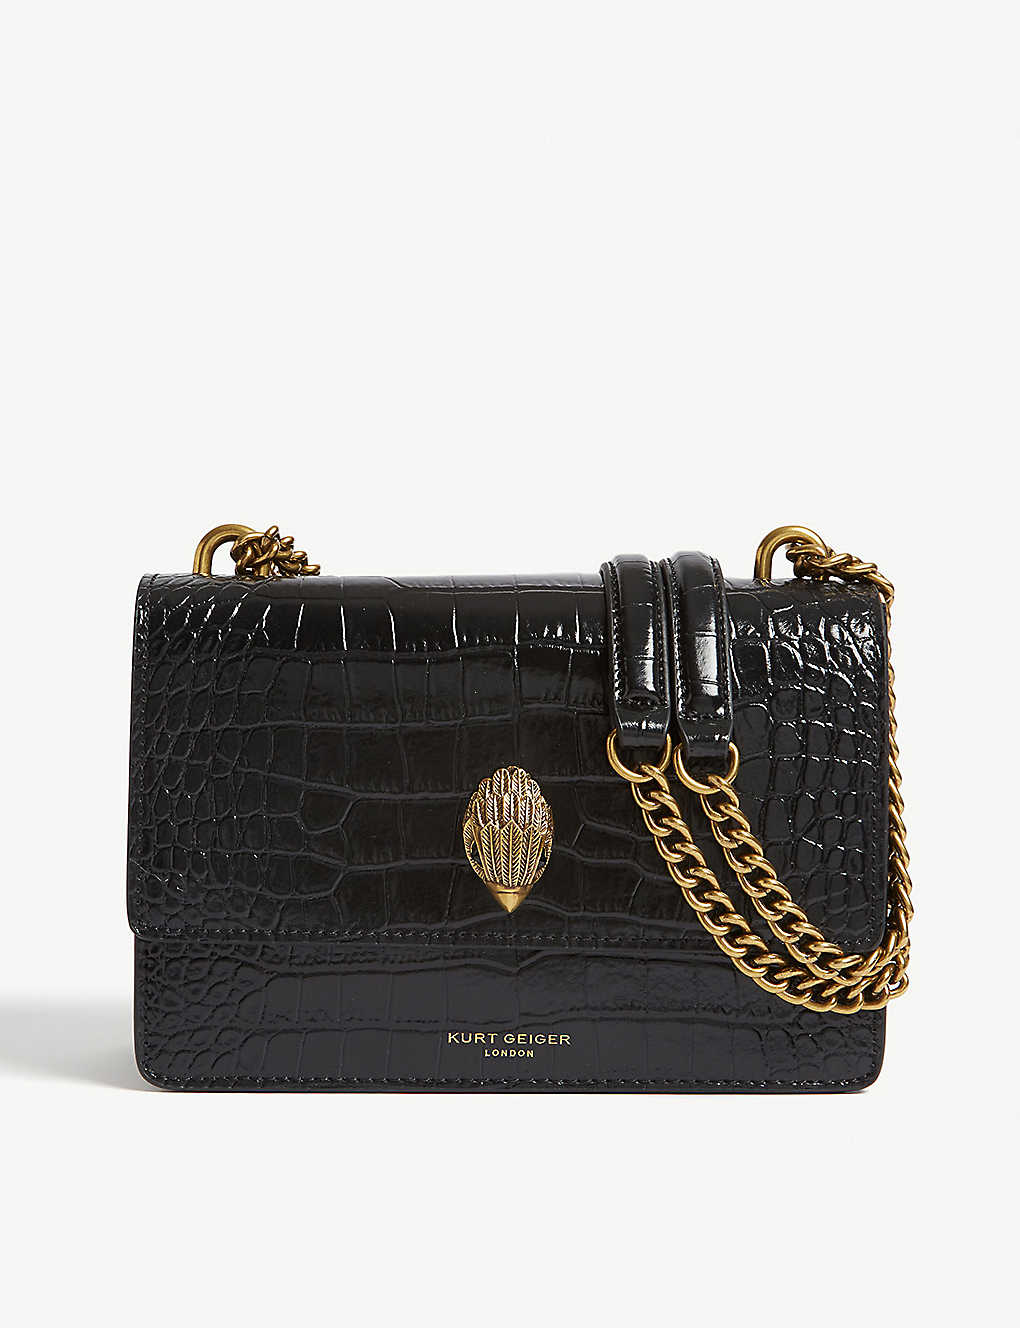 KURT GEIGER LONDON: Shoreditch croc-embossed leather cross-body bag